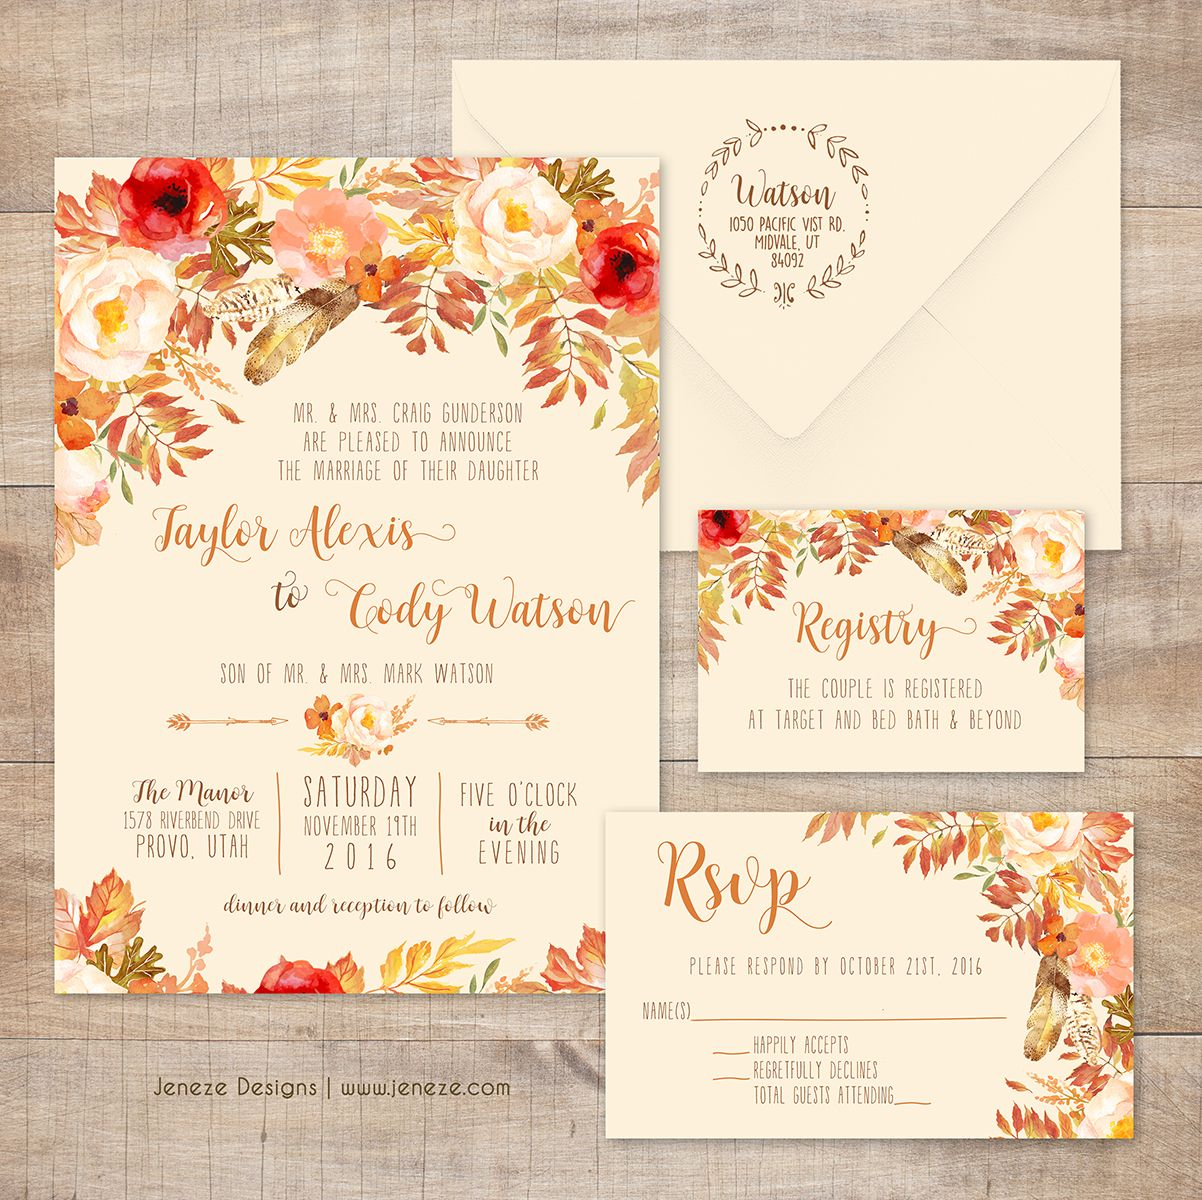 Beautiful fall wedding invitations pretty flowers and fall leaves beautiful fall wedding invitations pretty flowers and fall leaves with flowing fonts and fall colors monicamarmolfo Images